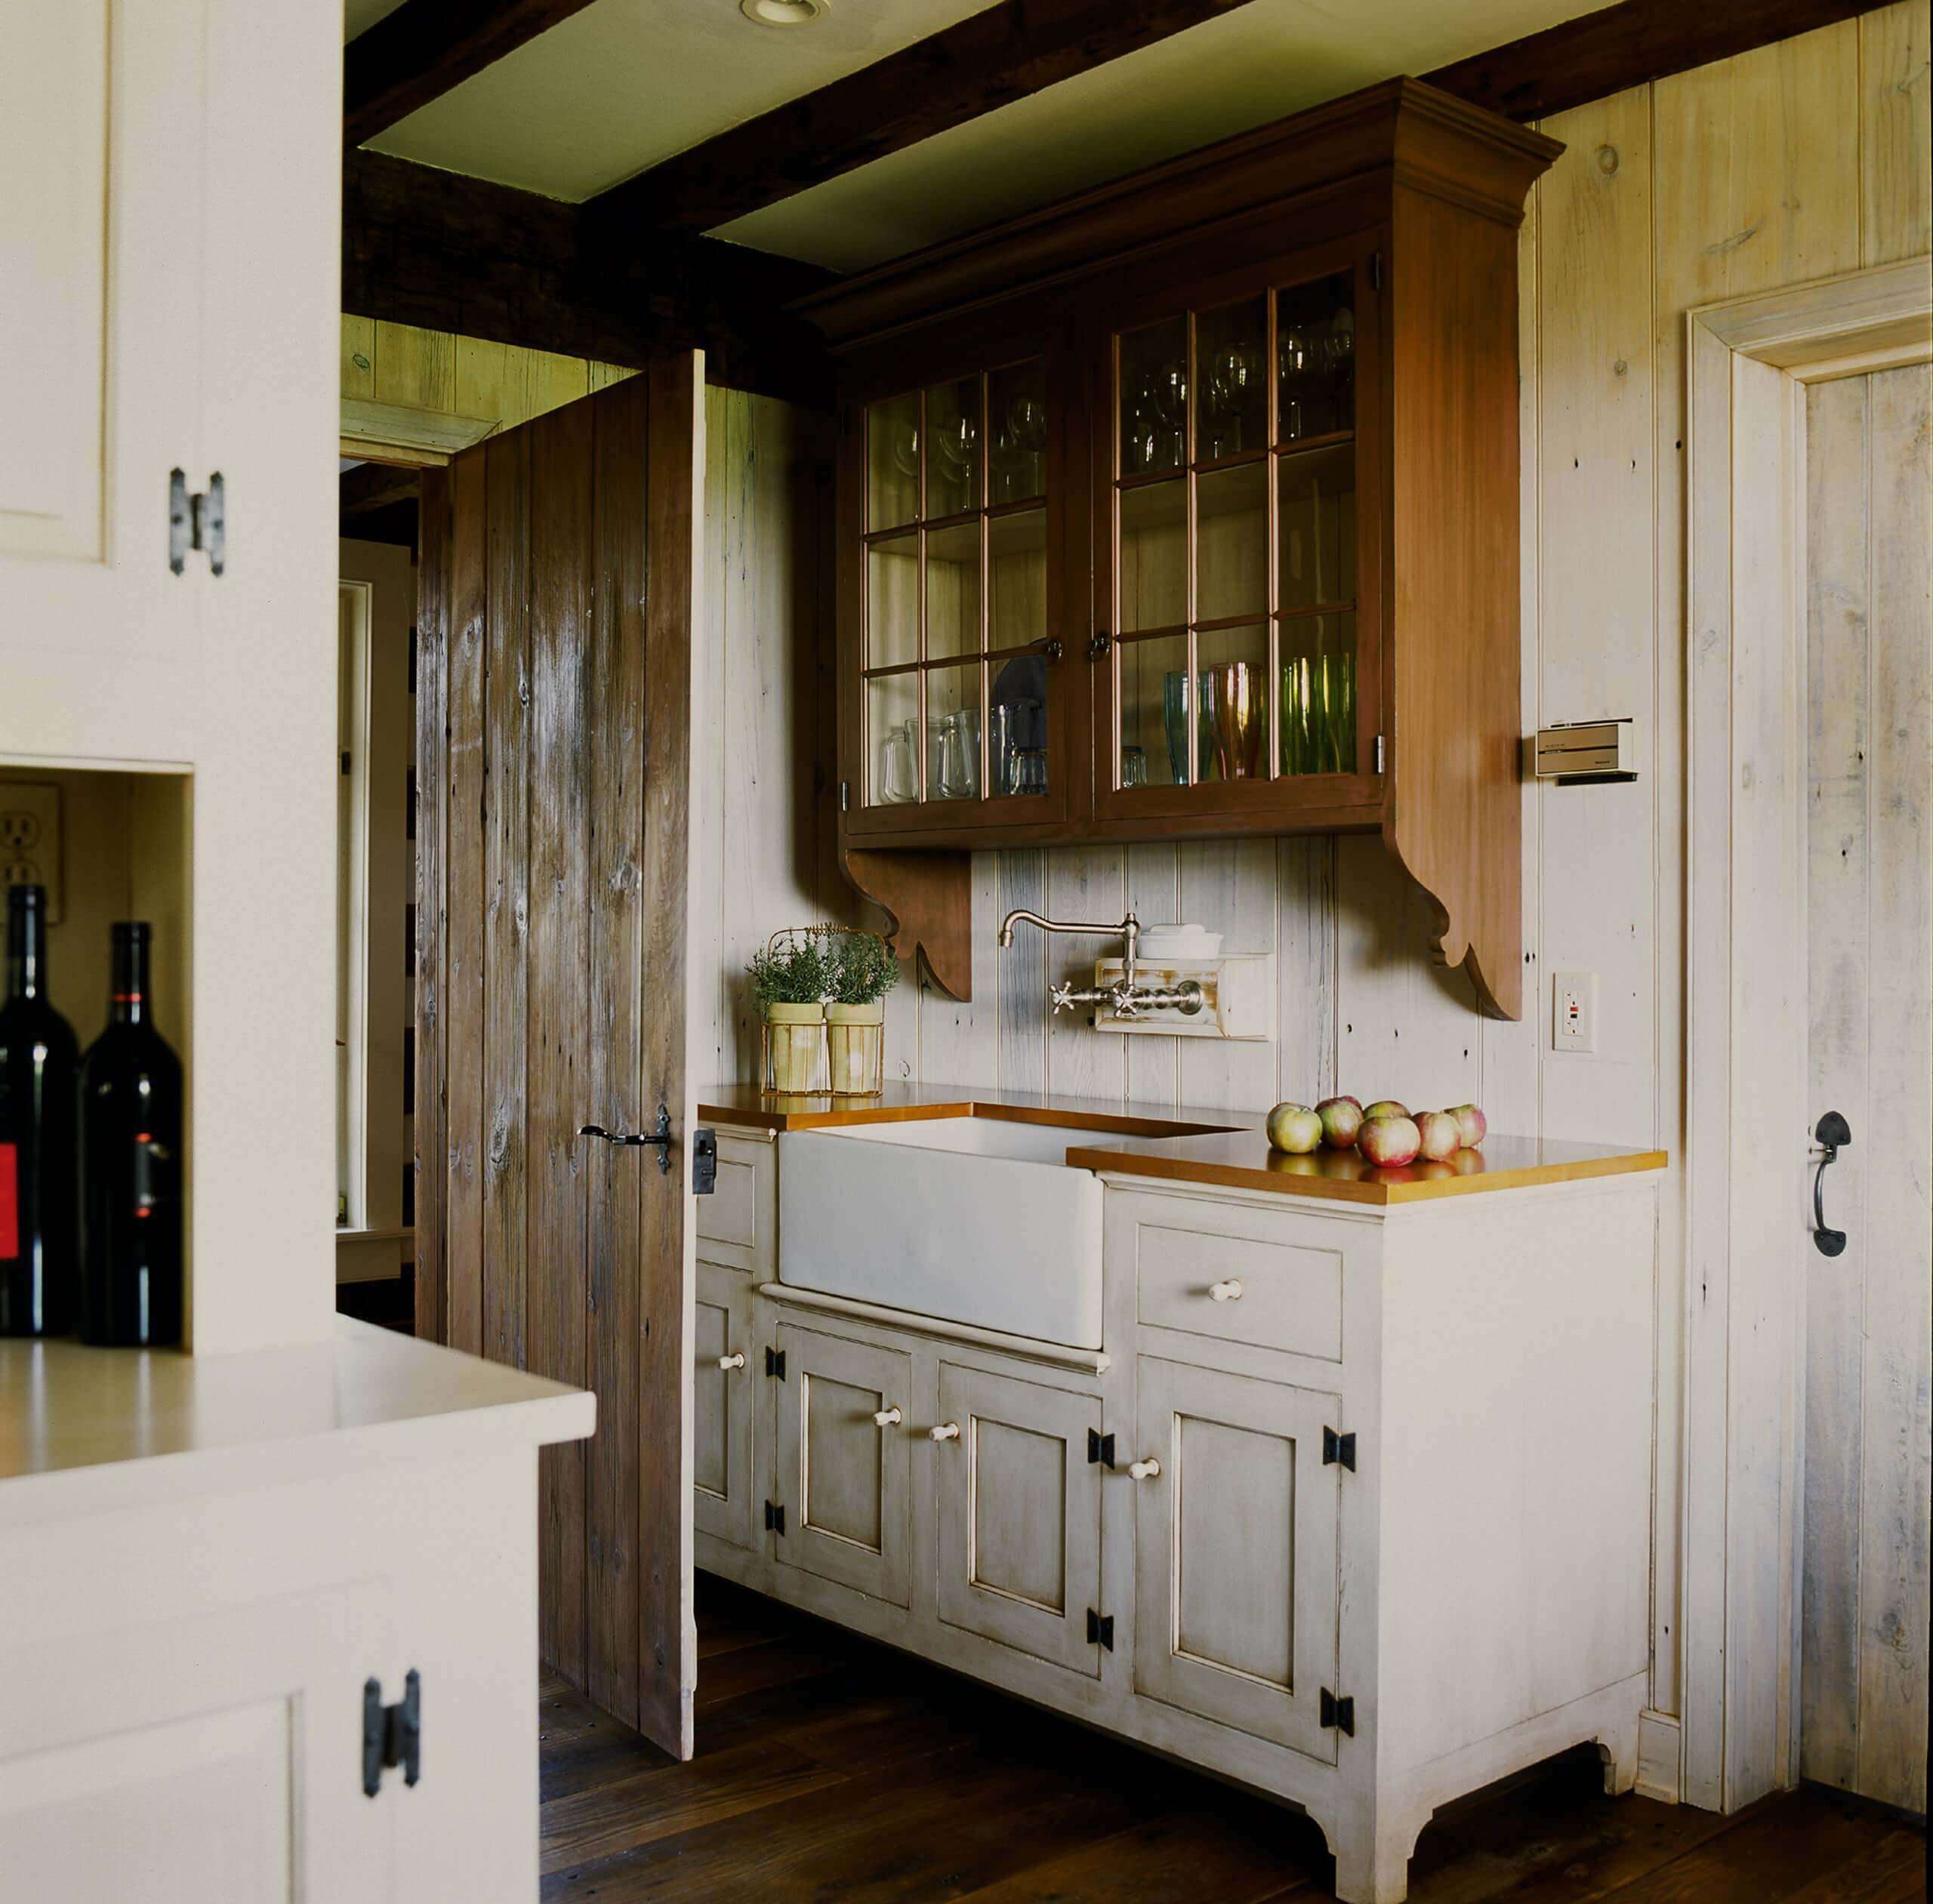 Kitchen Cabinets: 23 Best Ideas Of Rustic Kitchen Cabinet You'll Want To Copy